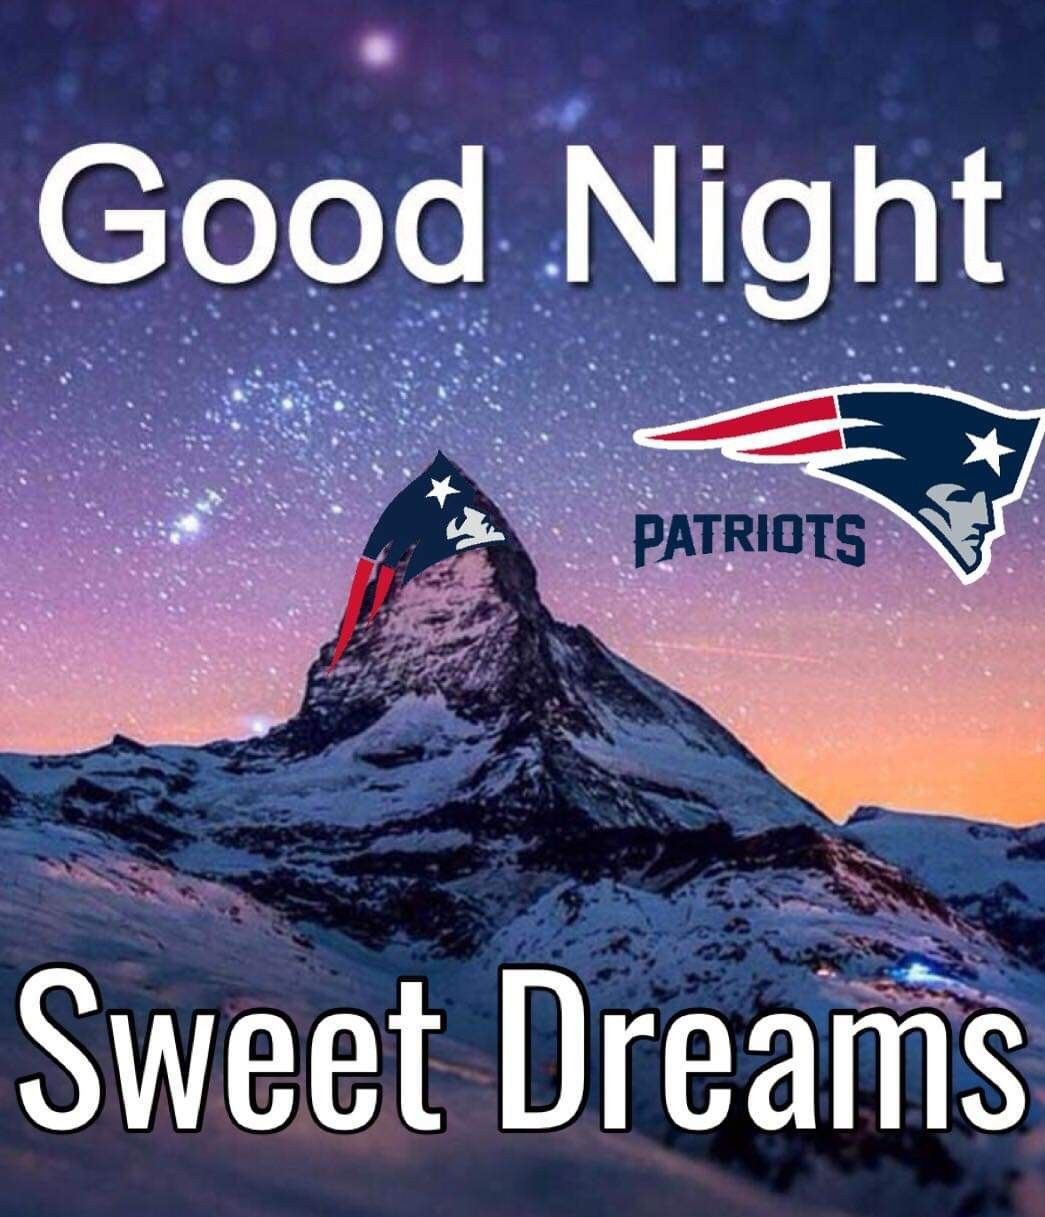 Pin By Mistie Tuttle On Patriots With Images Patriots Memes New England Patriots Patriots Game